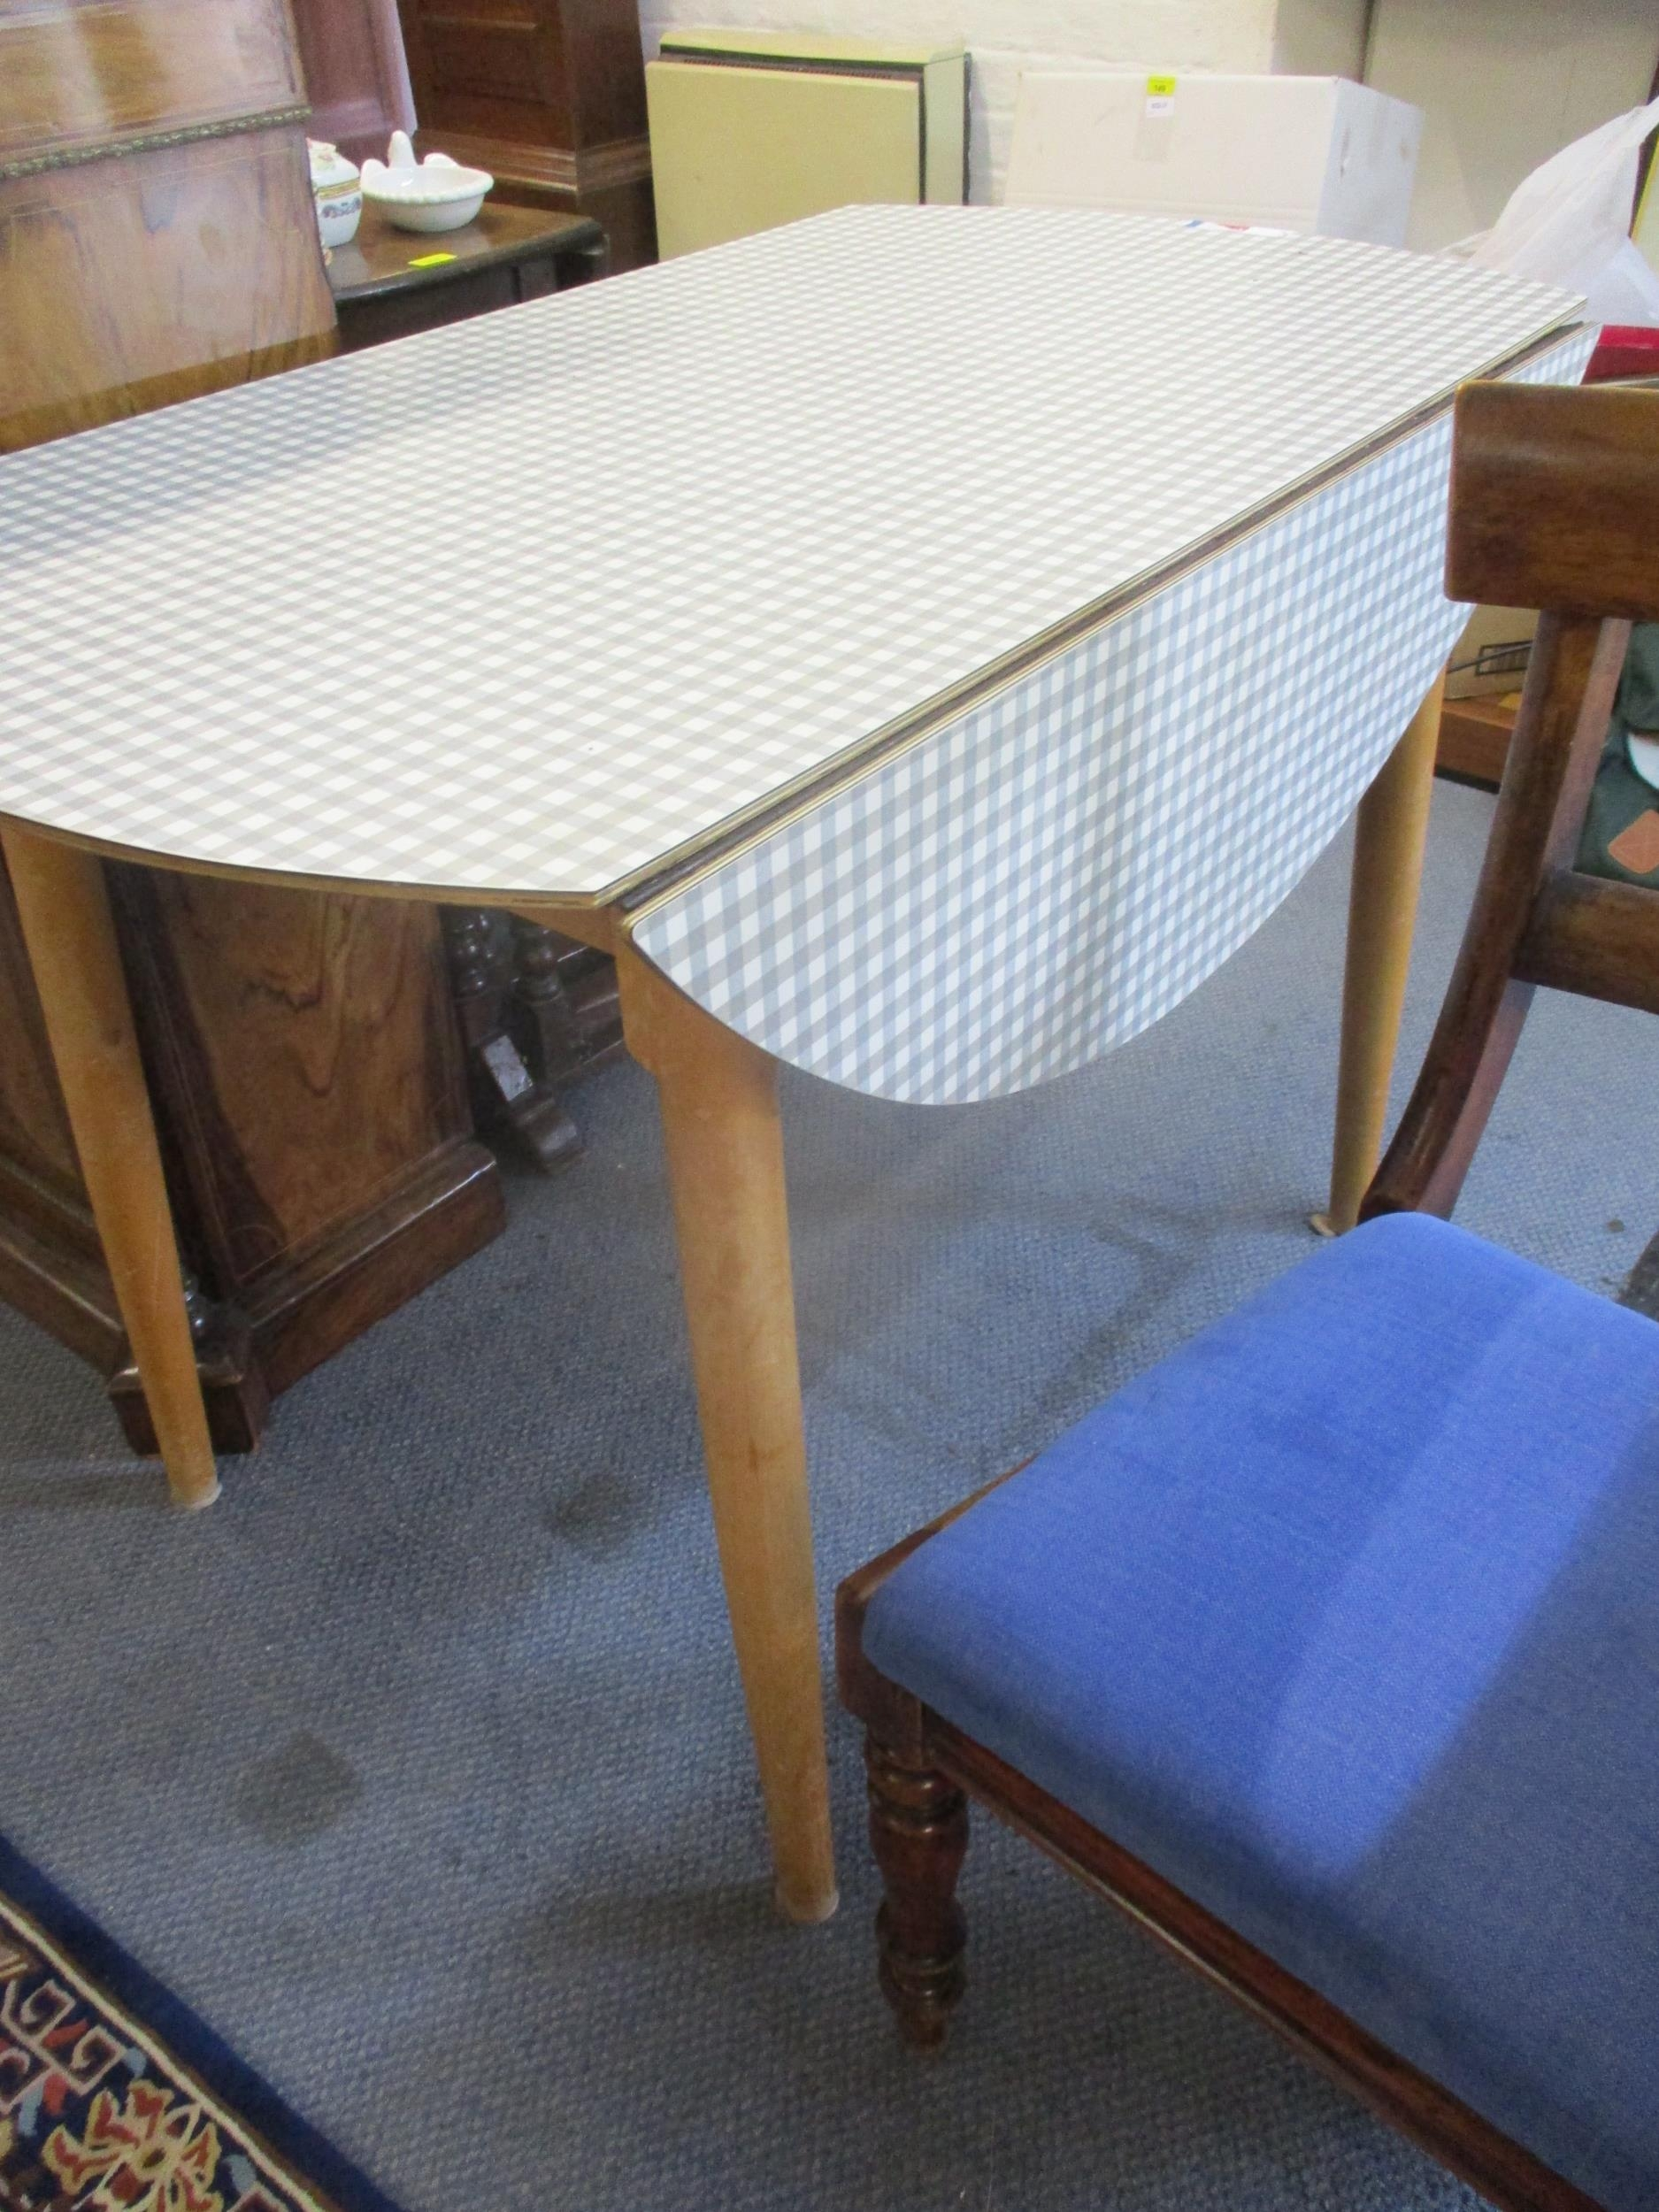 A vintage folding kitchen table with chequered Formica top above light wooden legs Location: RAM - Image 2 of 3